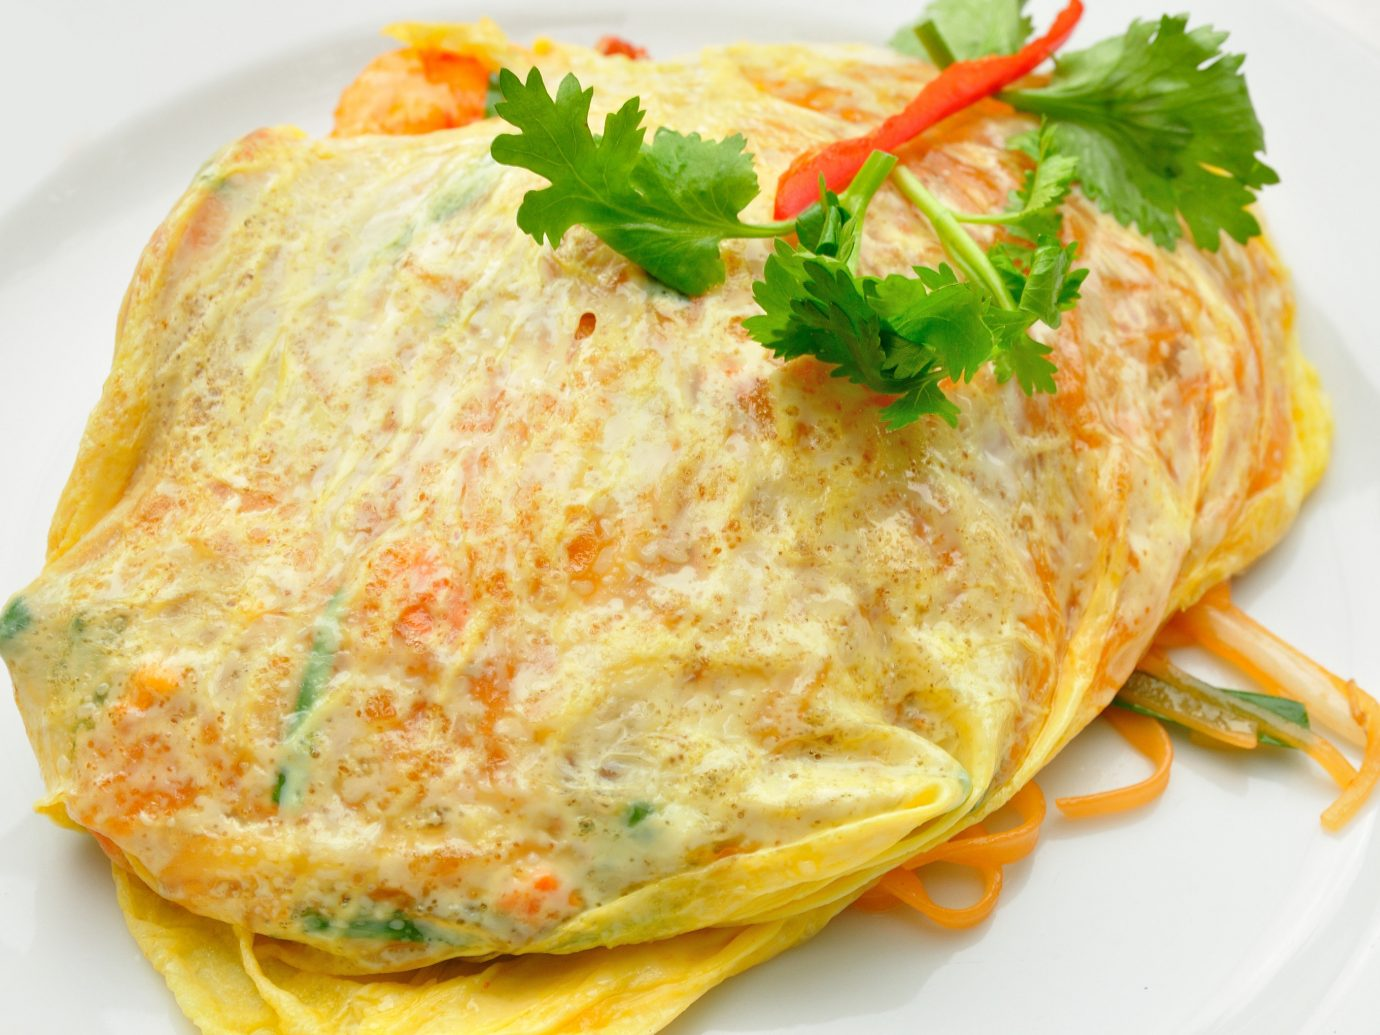 Jetsetter Guides food plate dish omelette meal breakfast cuisine omurice white fish produce tortilla de patatas frittata vegetable sauce omelet meat